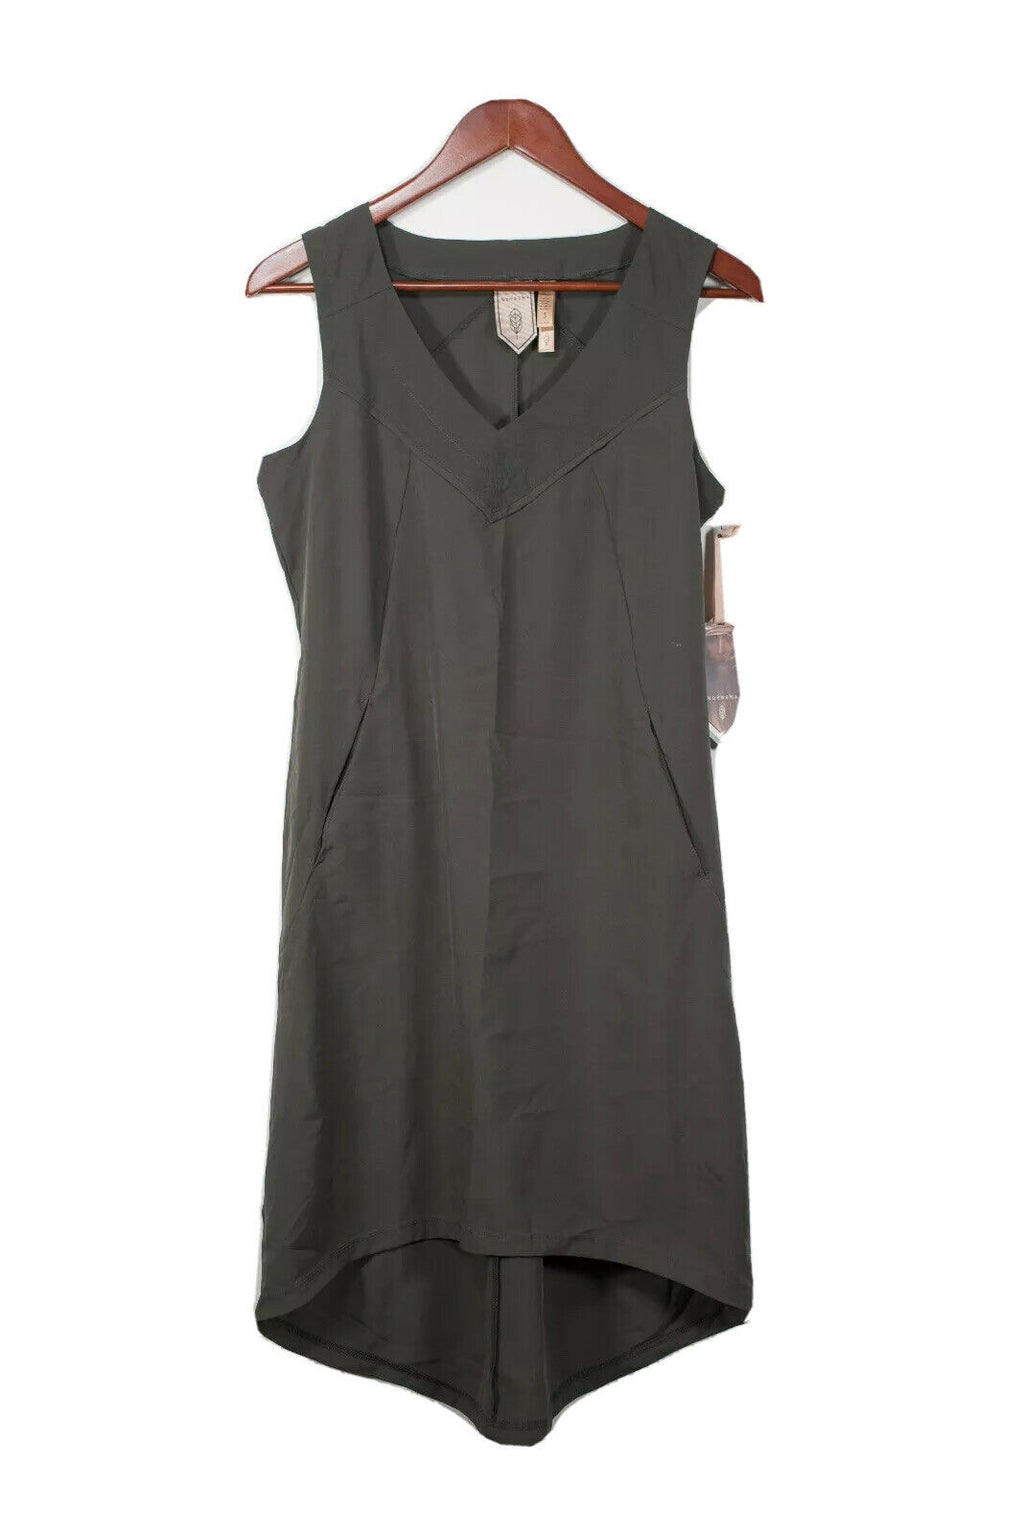 Indygena Small Olive Green Midi Dress